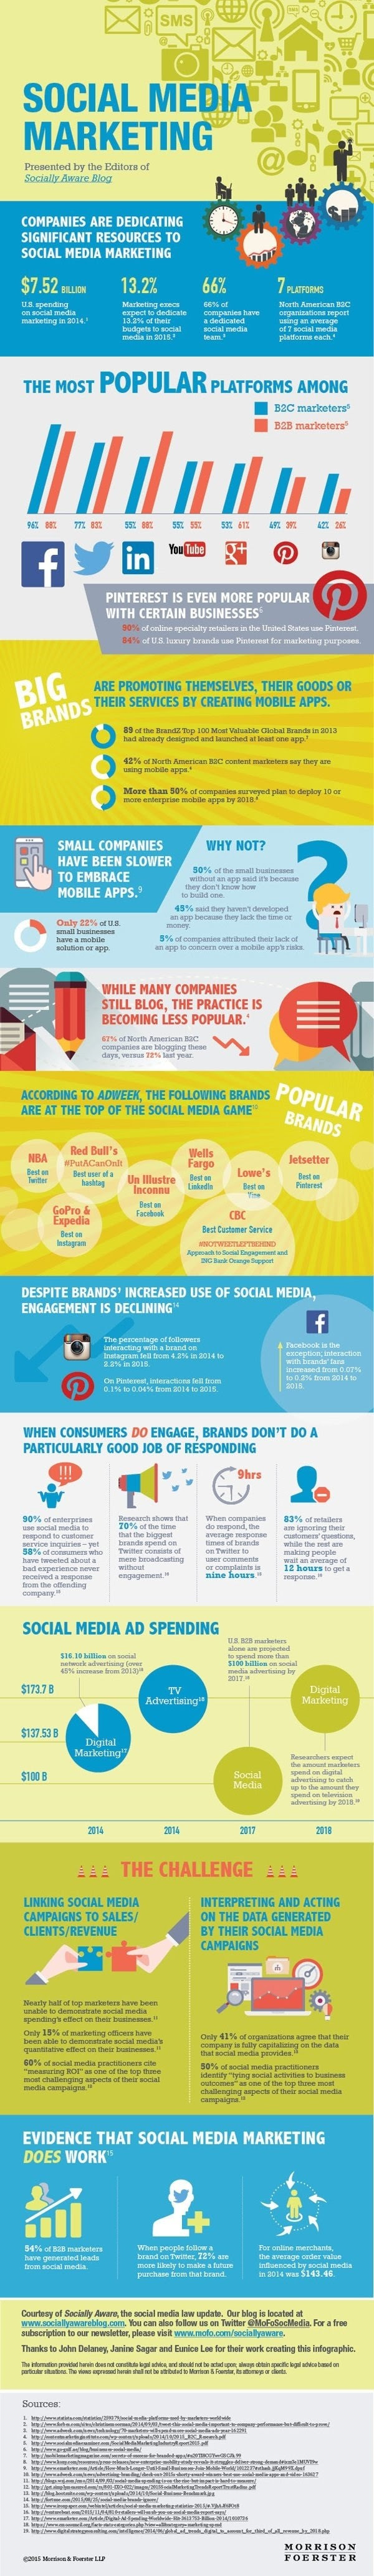 Social Media Marketing Infographic  Bing images